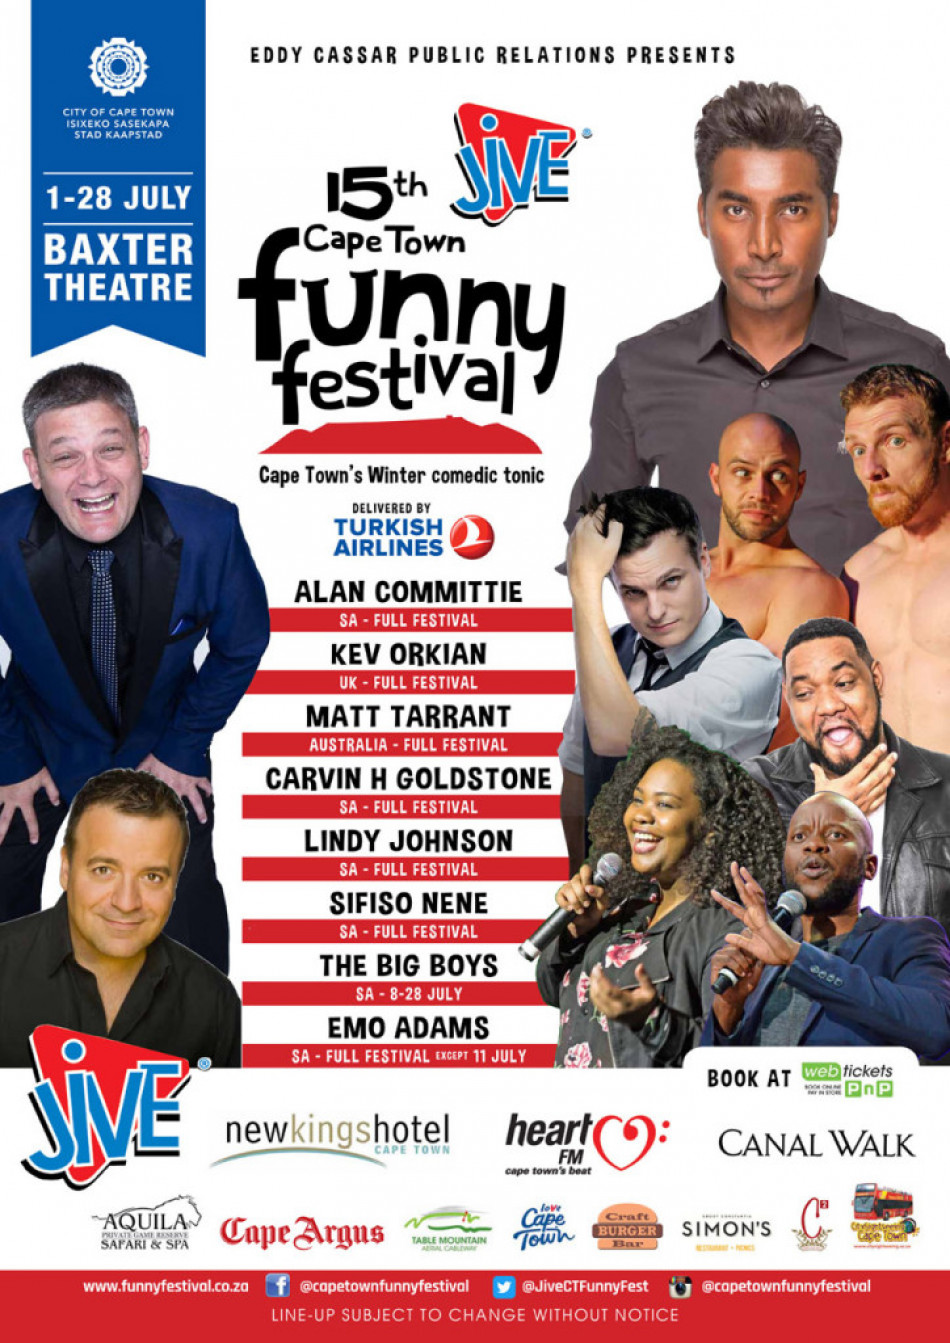 Funny Festival A2 Poster 20191 724x1024 - It's time for the Cape Town Funny Festival: The city's official winter comedic tonic